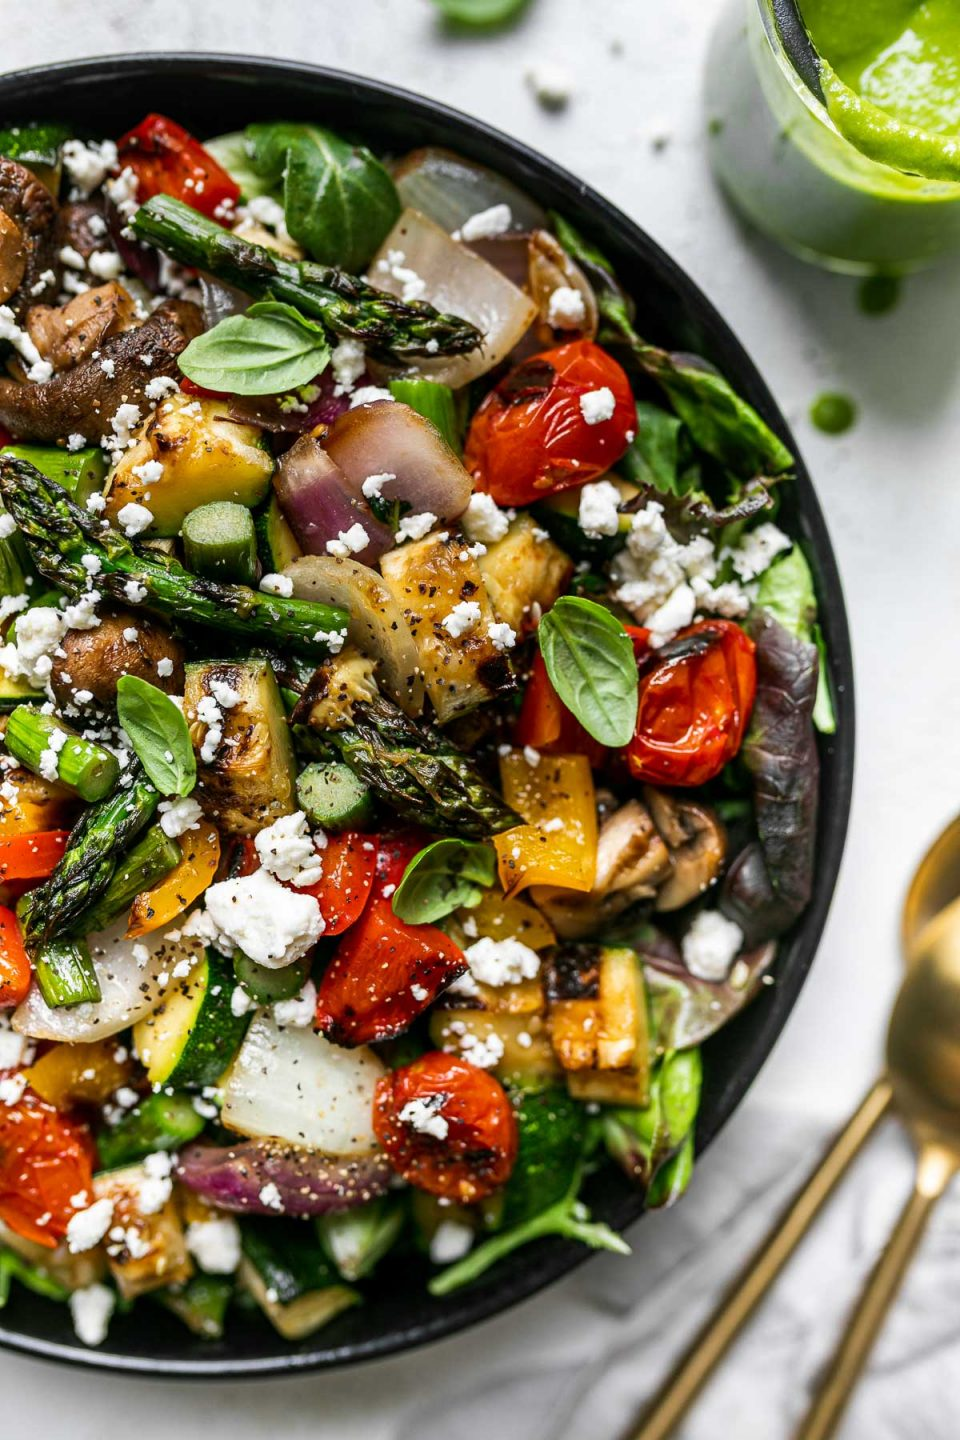 Chopped grilled vegetable salad garnished with cheese in a large black serving bowl atop a gray linen napkin on a white surface. 2 gold serving spoons, a jar of lemon basil vinaigrette, cheese crumbles, & loose basil leaves surround the serving bowl.